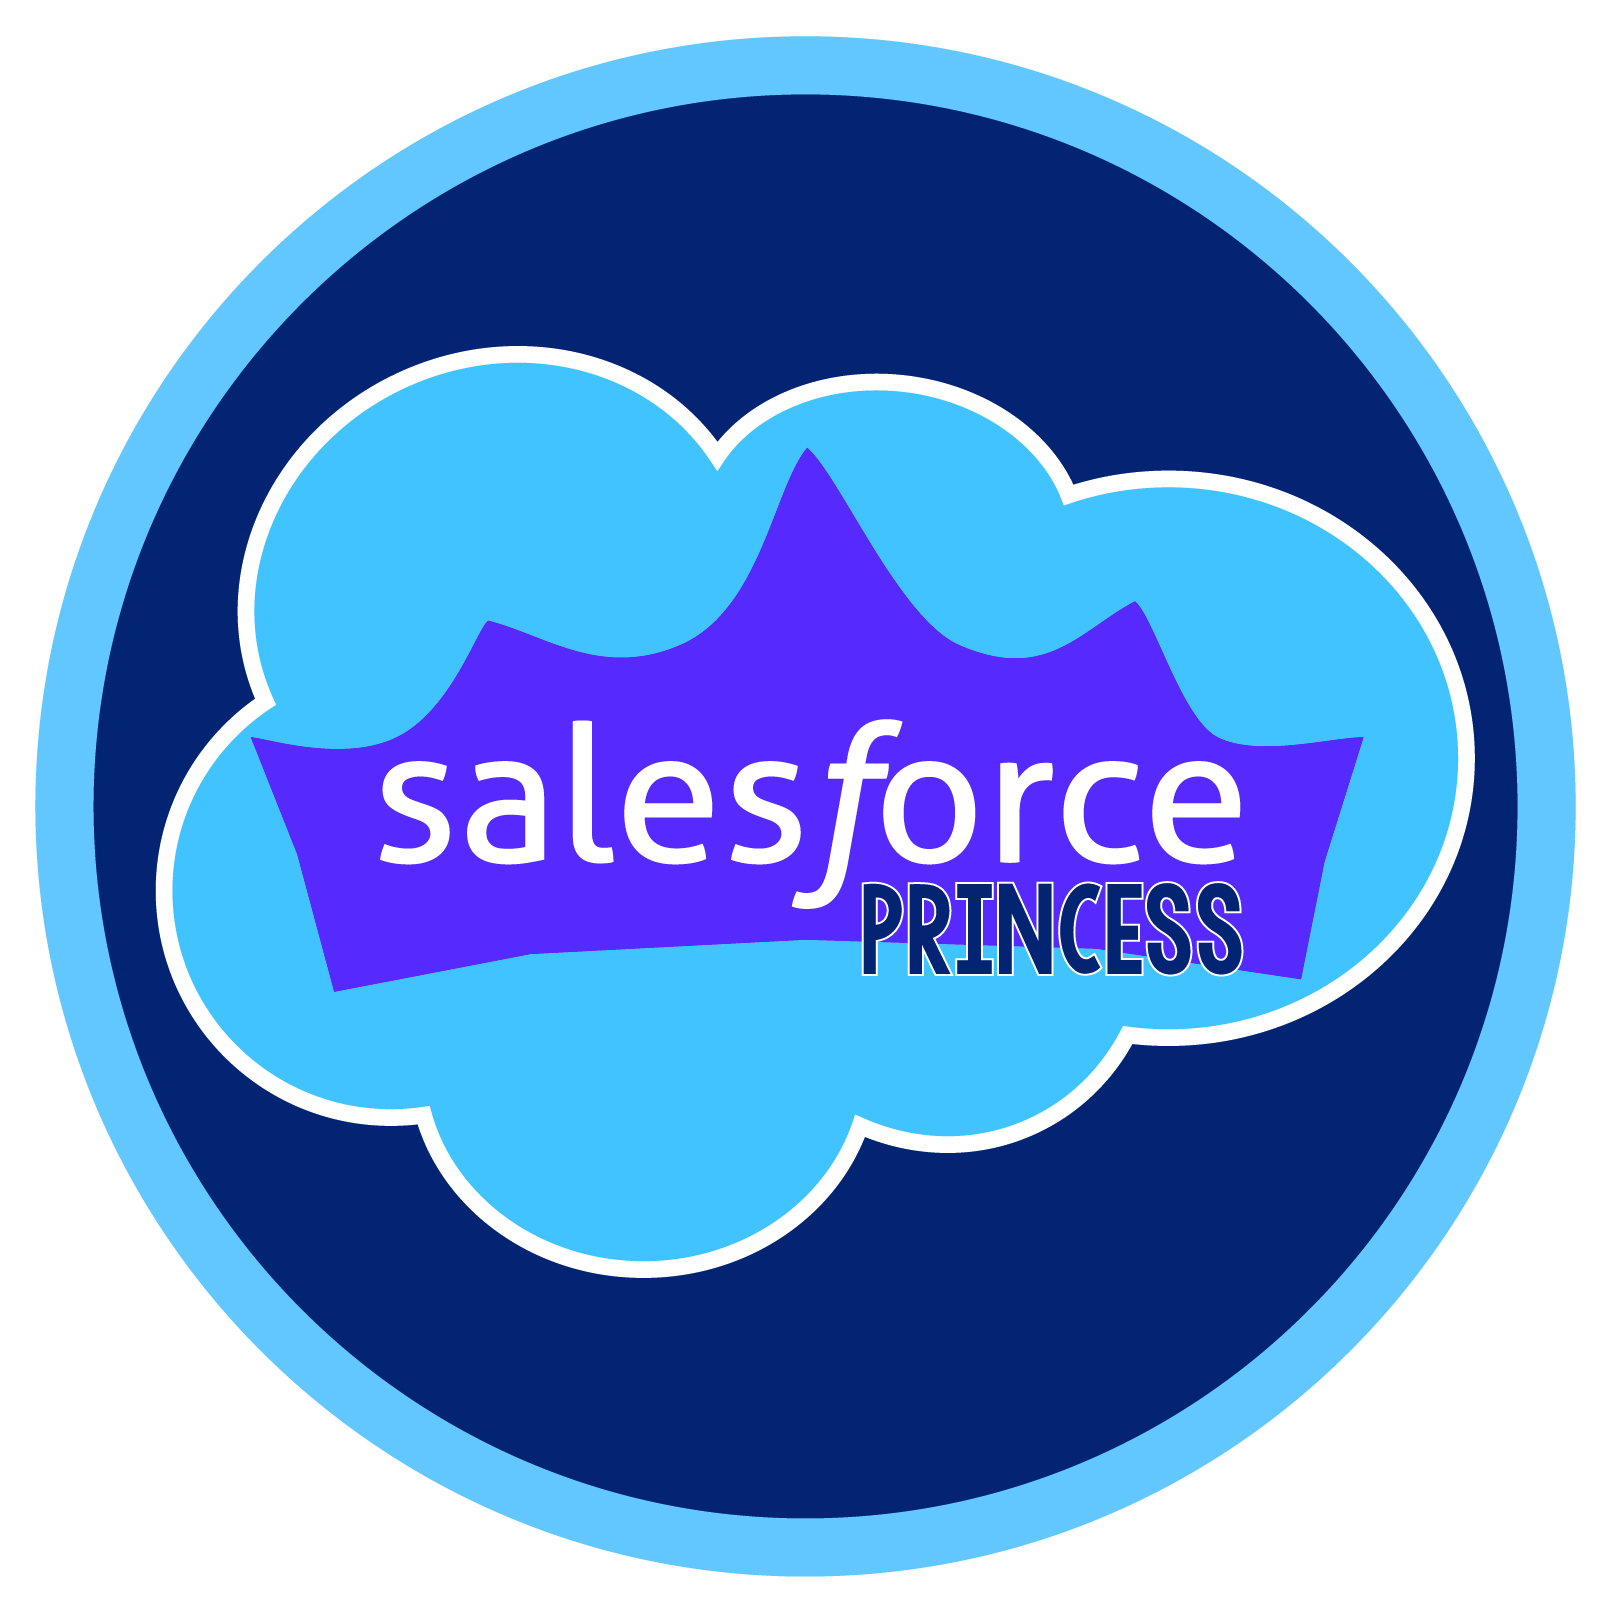 #SalesforcePrincess